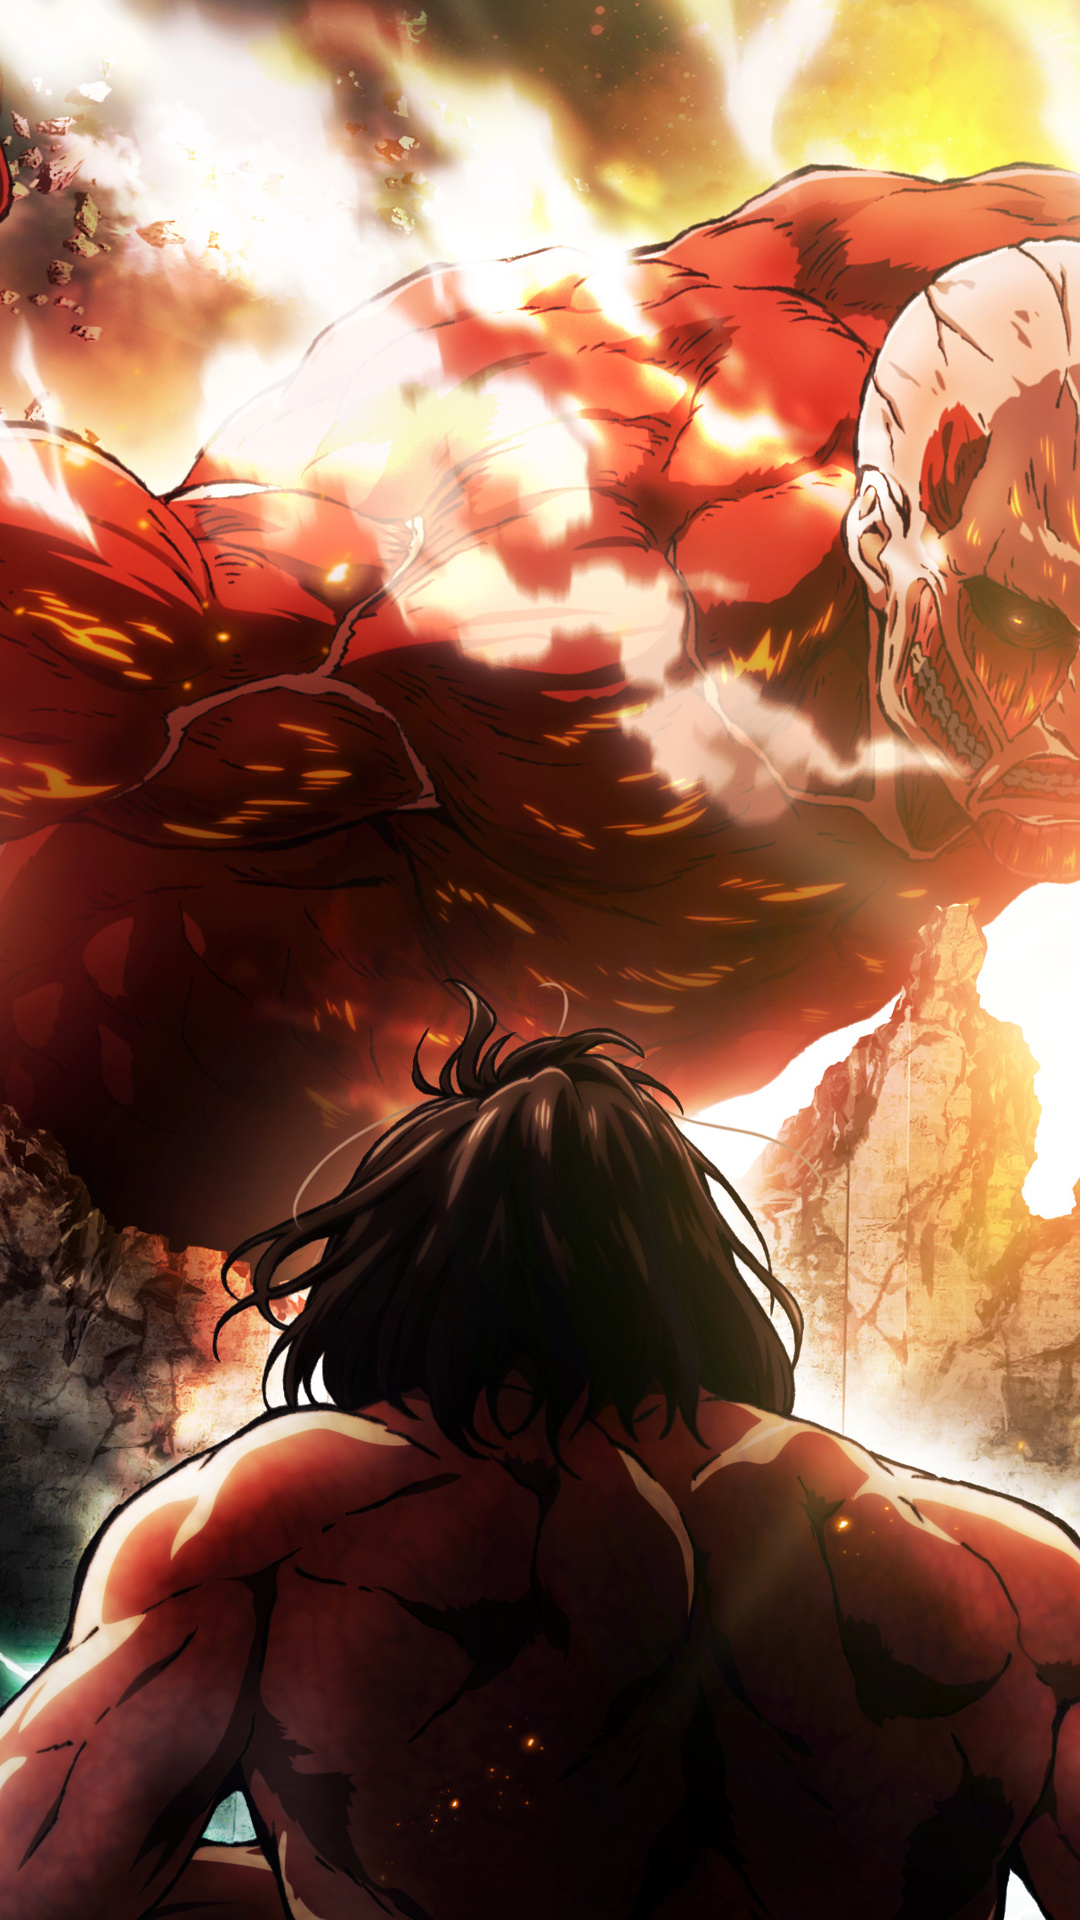 Attack on titan may be popular but how much do you actually know about the series? 1080x1920 Attack On Titan Season 4 Iphone 7,6s,6 Plus ...